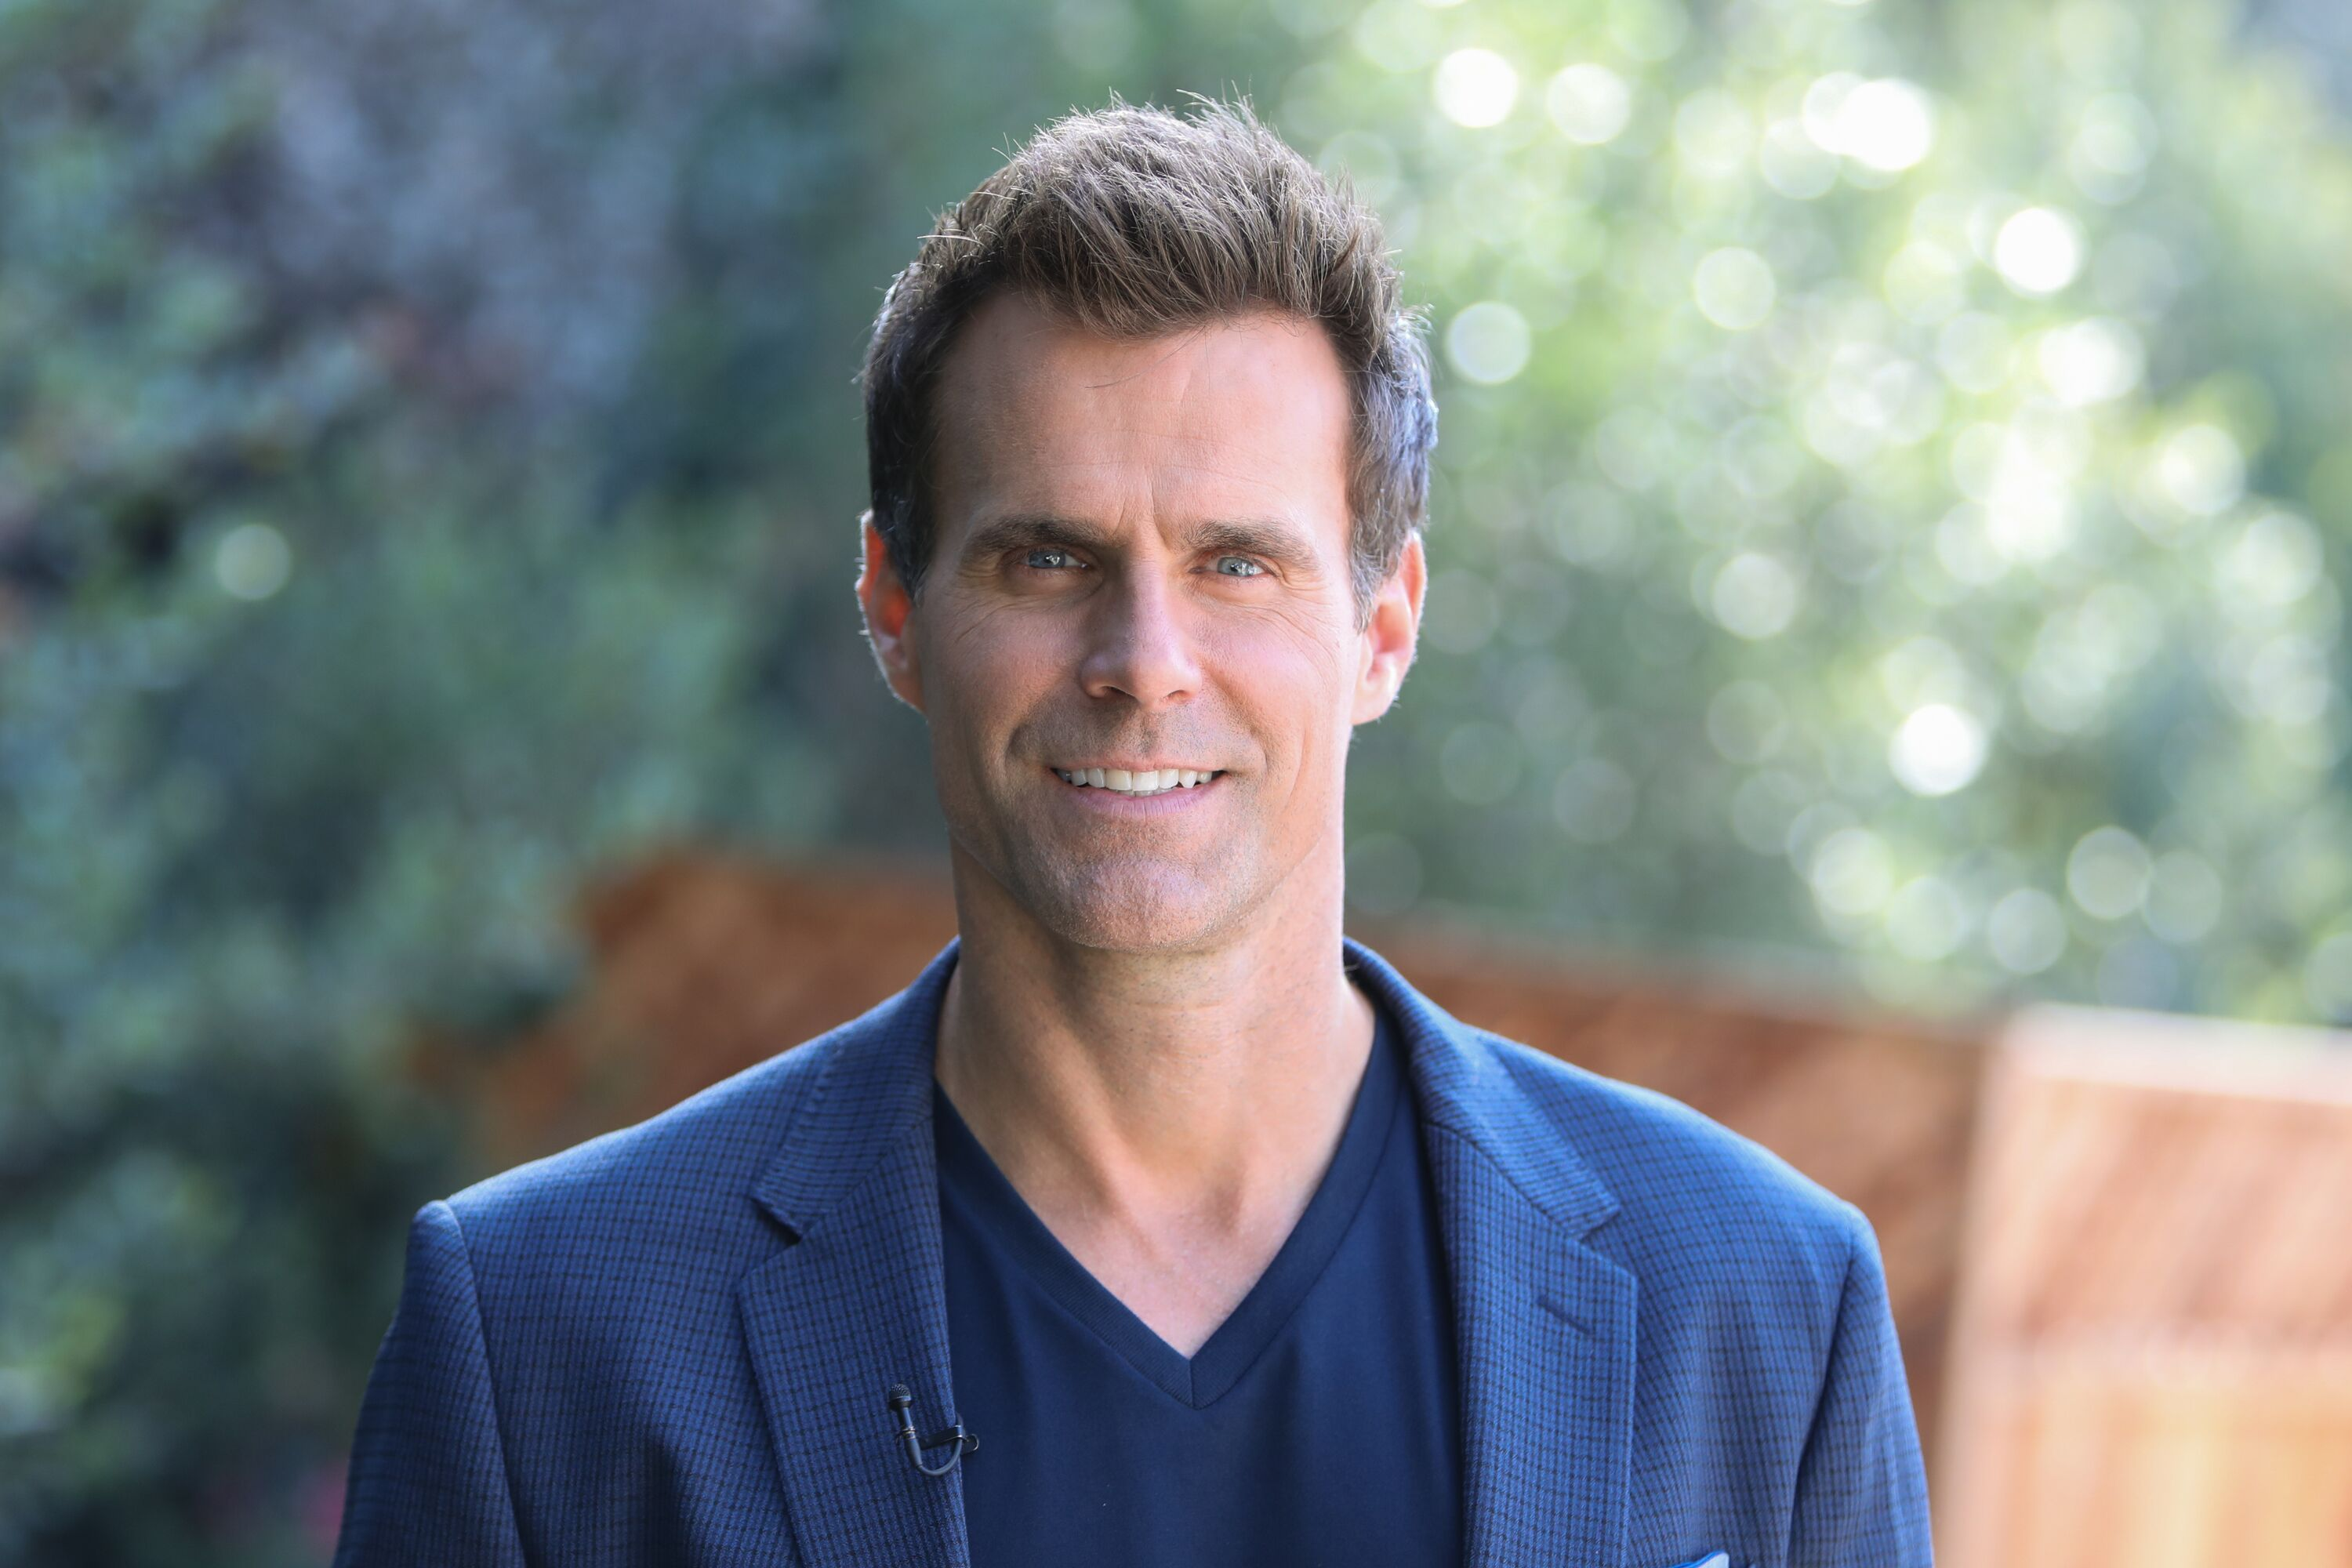 """Actor / TV Host Cameron Mathison on the set of Hallmark's """"Home & Family"""" at Universal Studios Hollywood on October 30, 2018   Photo: Getty Images"""